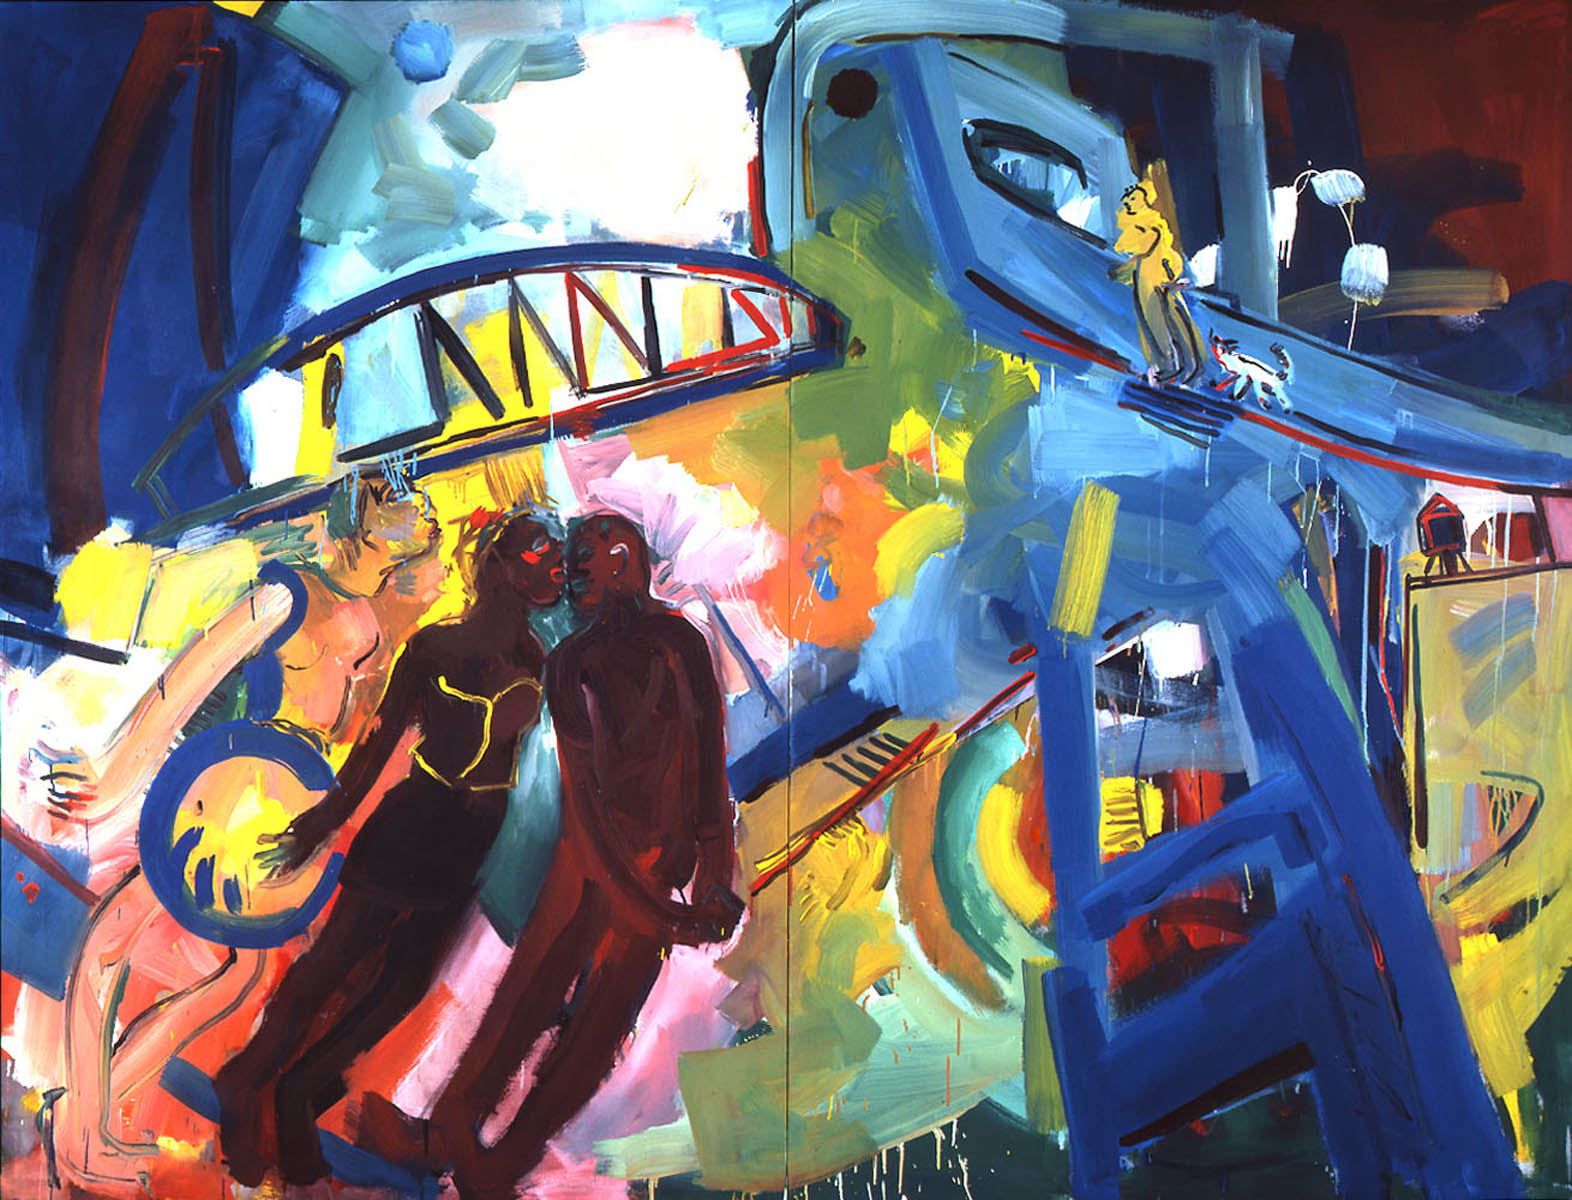 1987-21_under-the-bridge_1987_acryl-leinwand_170x224cm